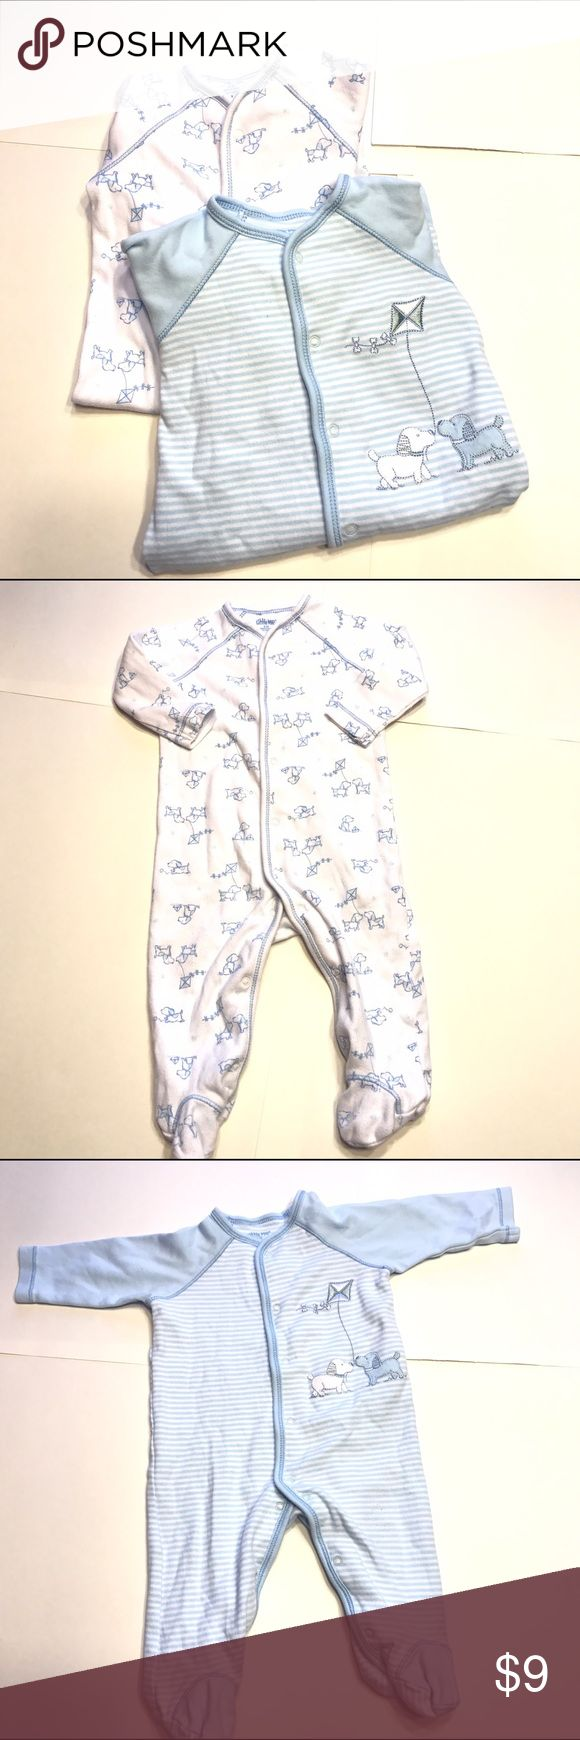 2 Pair 6m Boys PJs 2 pair Little Me pajamas blue and white so soft and great quality! Little Me Pajamas